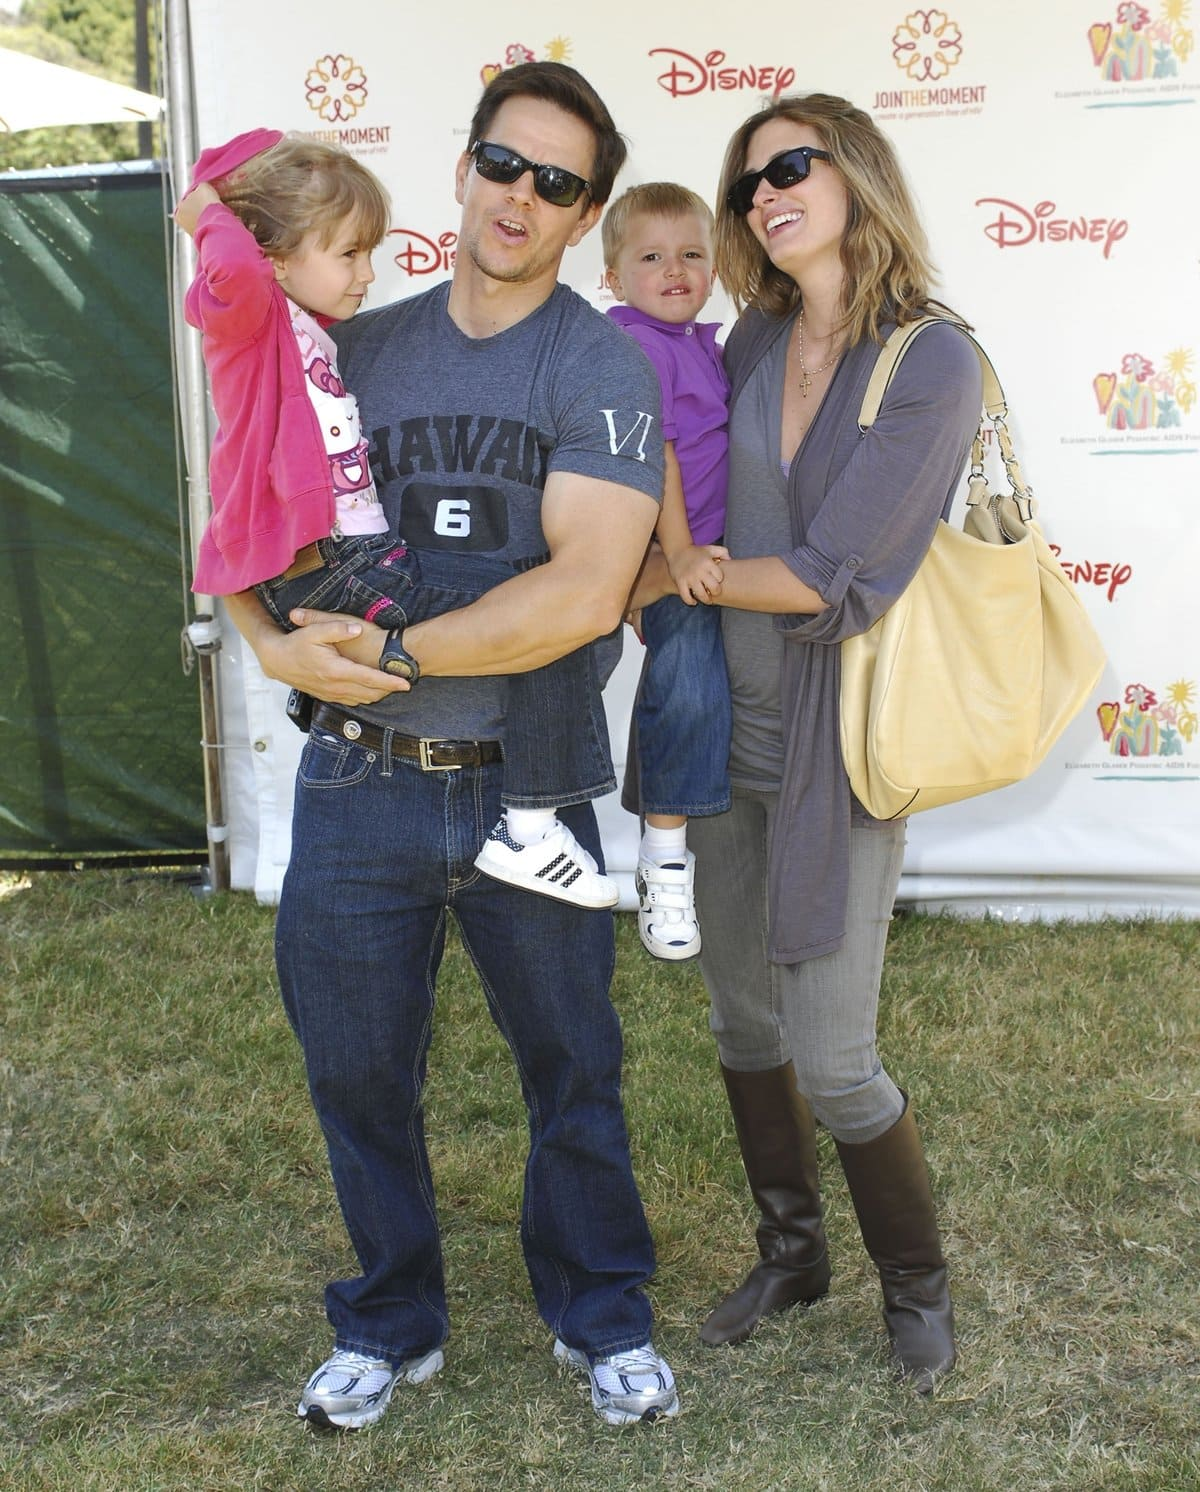 Mark Wahlberg and Rhea Durham with their children Ella Rae Wahlberg and Michael Wahlberg